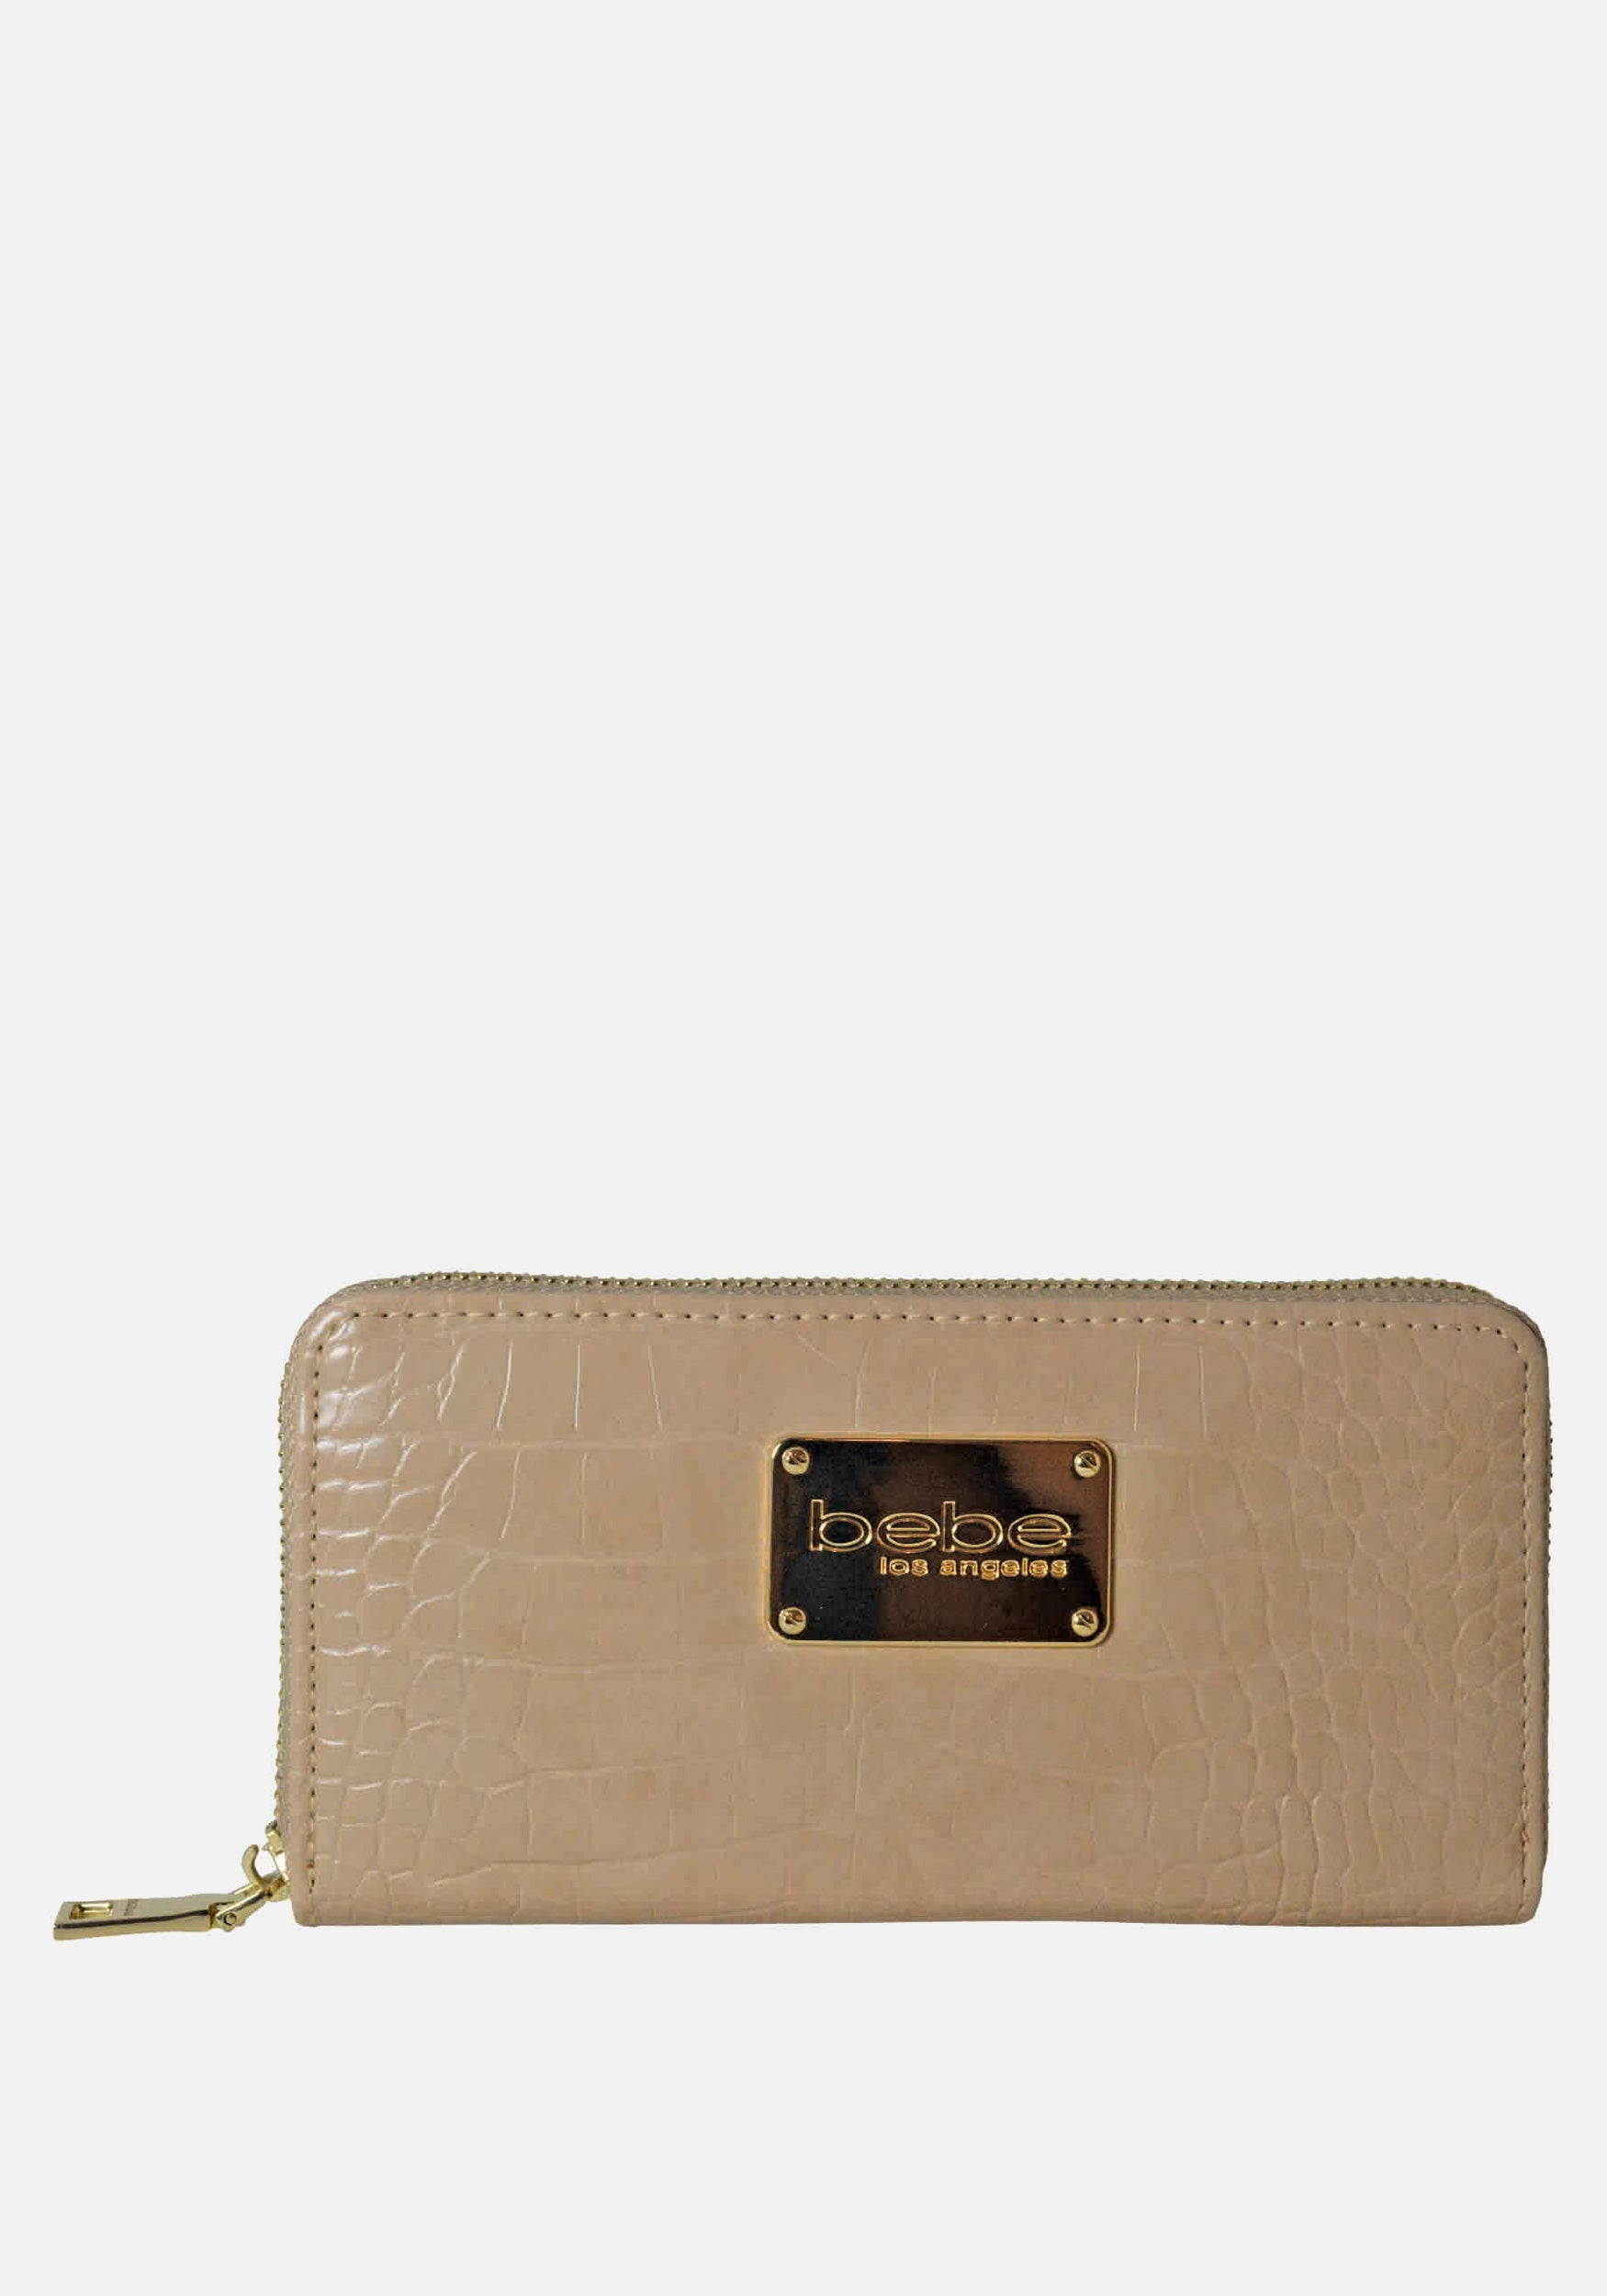 Bebe Women's Natalia Croco Wallet in Taupe Polyester